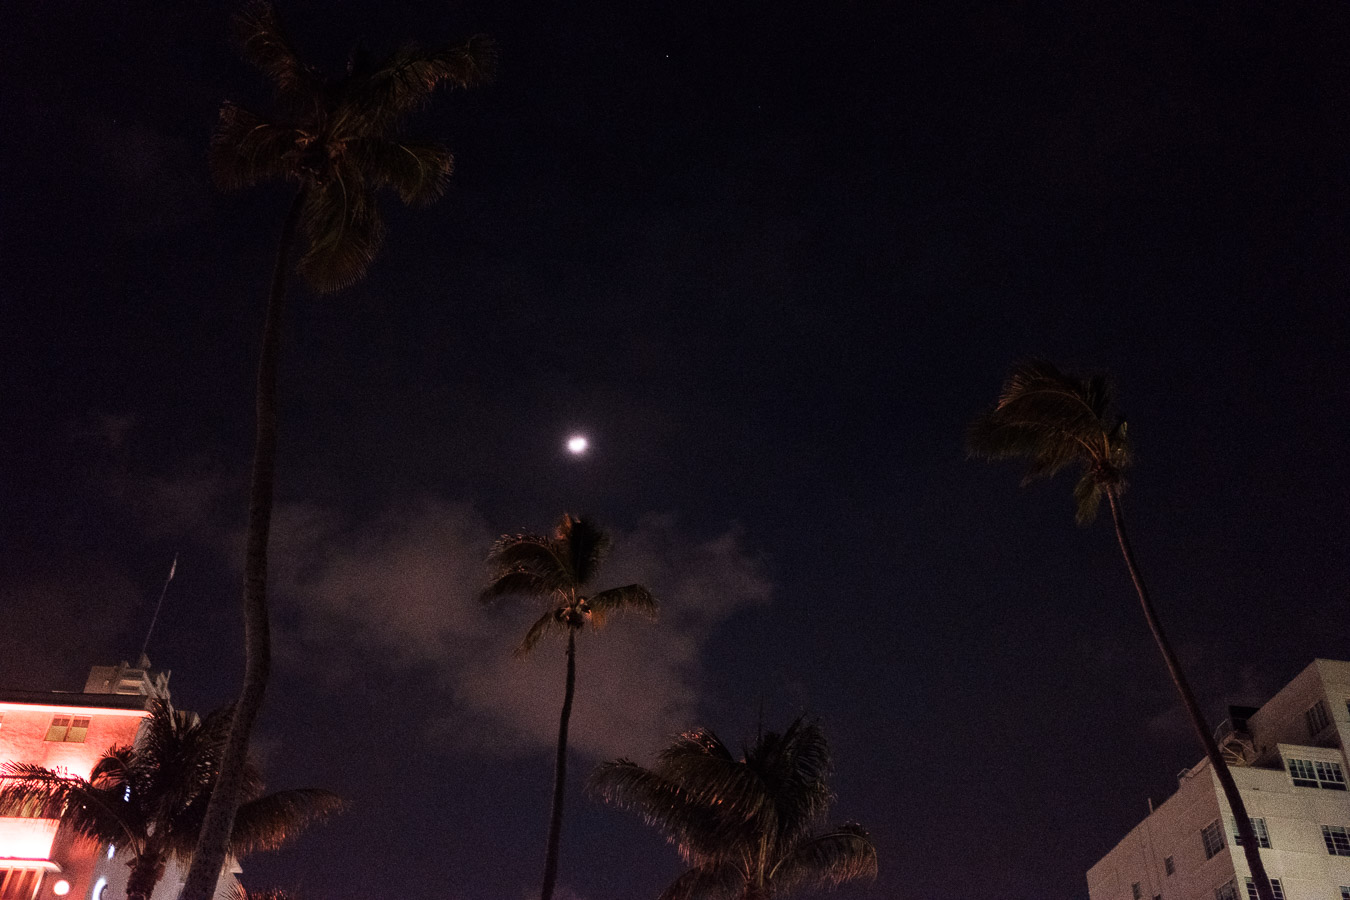 Palm trees against the night sky